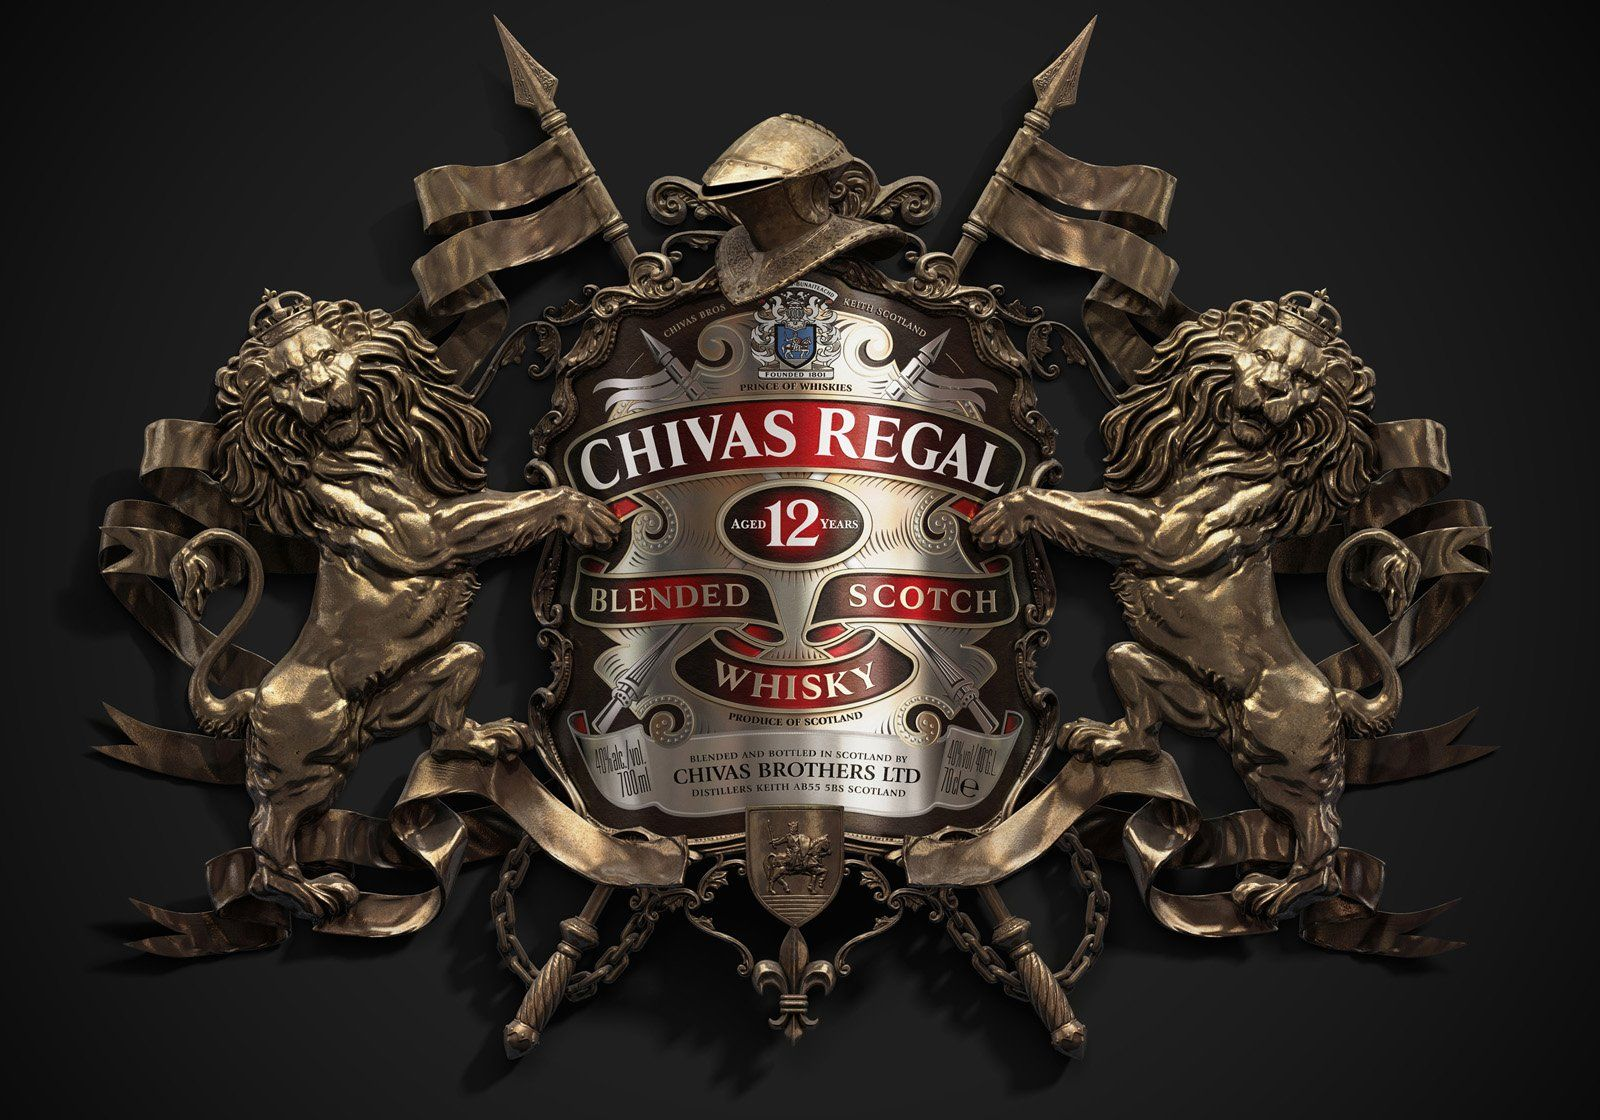 Chivas regal 12 picture logo hd wallpapers for pc desktop background chivas regal 12 picture logo hd wallpapers for pc desktop background voltagebd